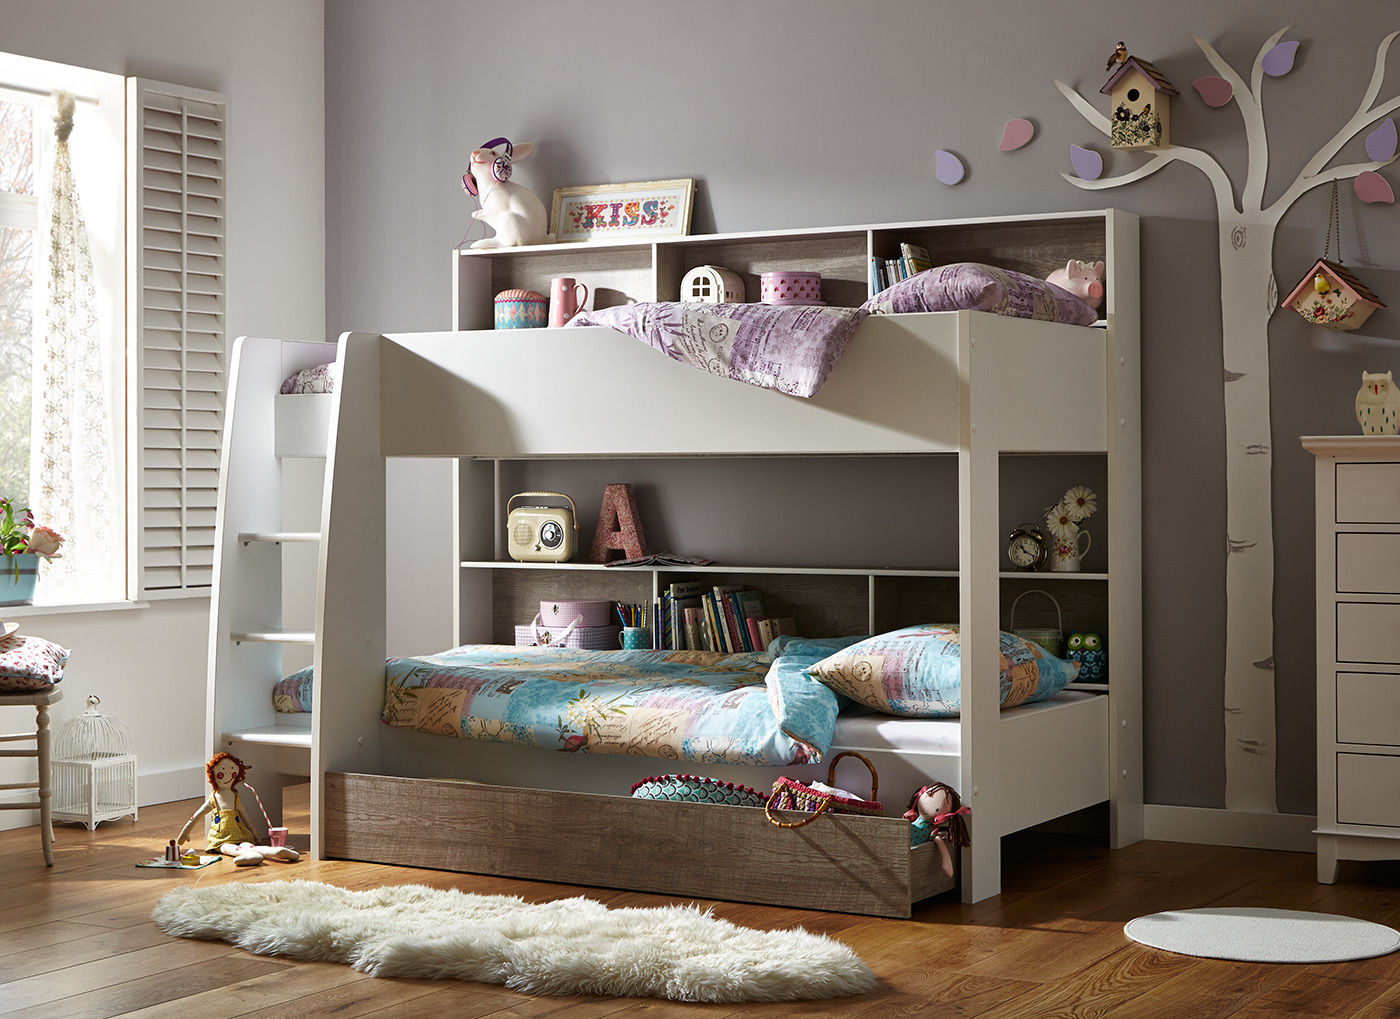 Amusing Design Of The Loft Bed With Storage With Brown Wooden Floor Added With Grey Bed Added With White Rugs Ideas